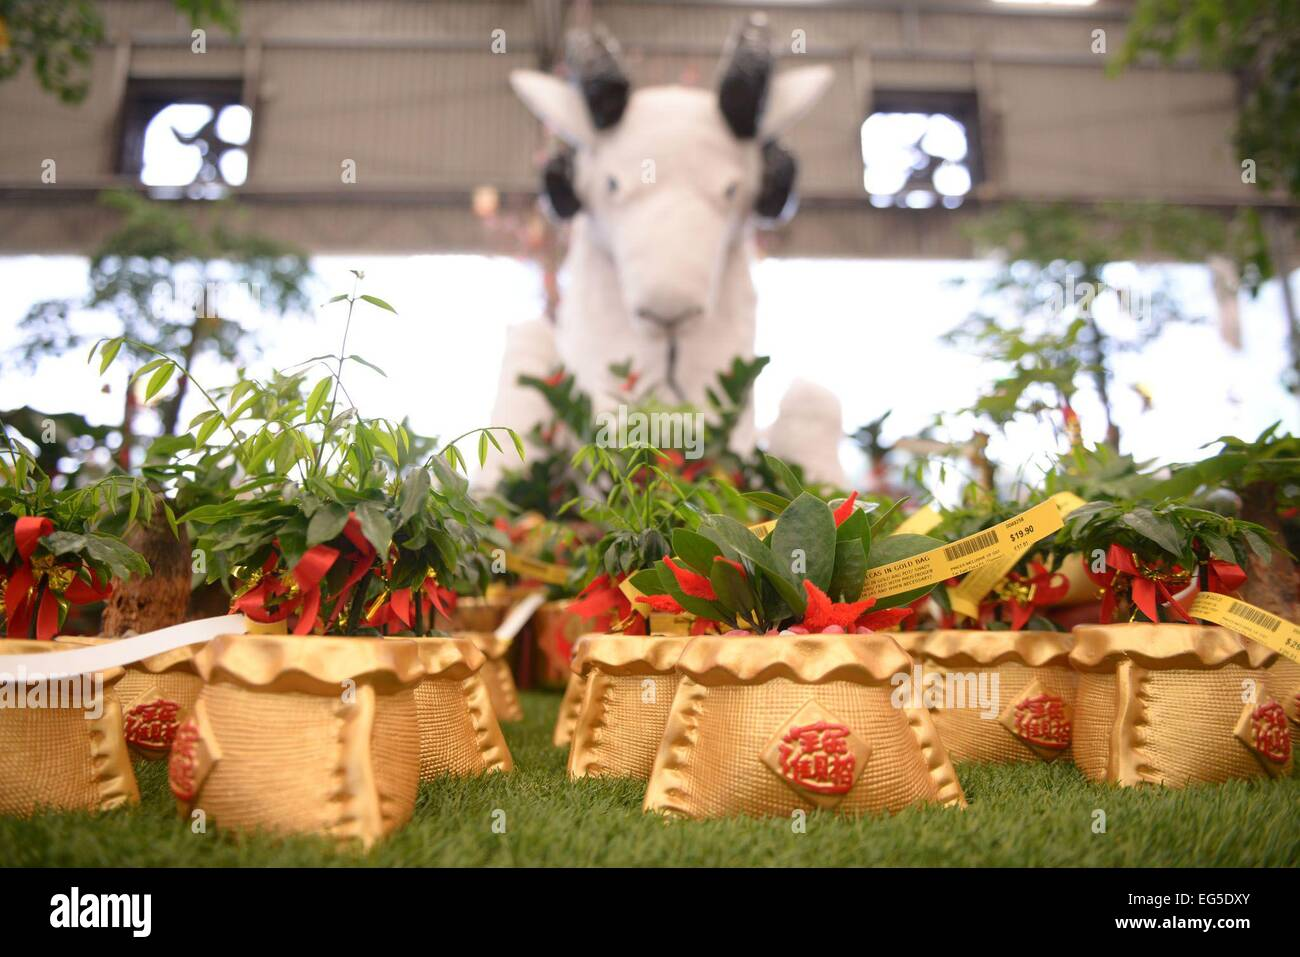 Chinese New Year plants in gold pots to usher in the Year of the Goat. - Stock Image